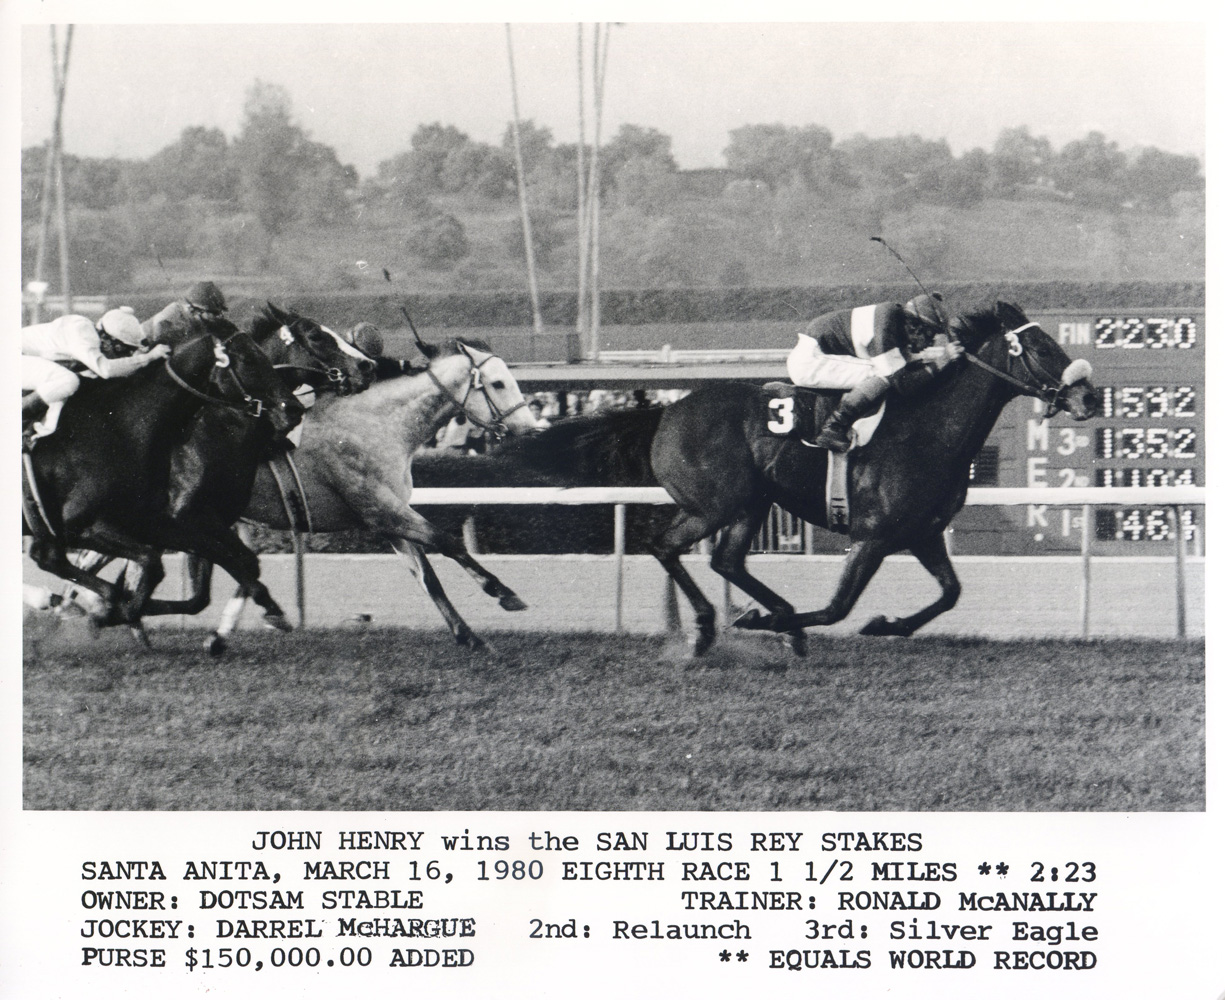 Darrel McHargue and John Henry winning the 1980 San Luis Rey Stakes at Santa Anita and equaling a world record (Bill Mochon/Museum Collection)